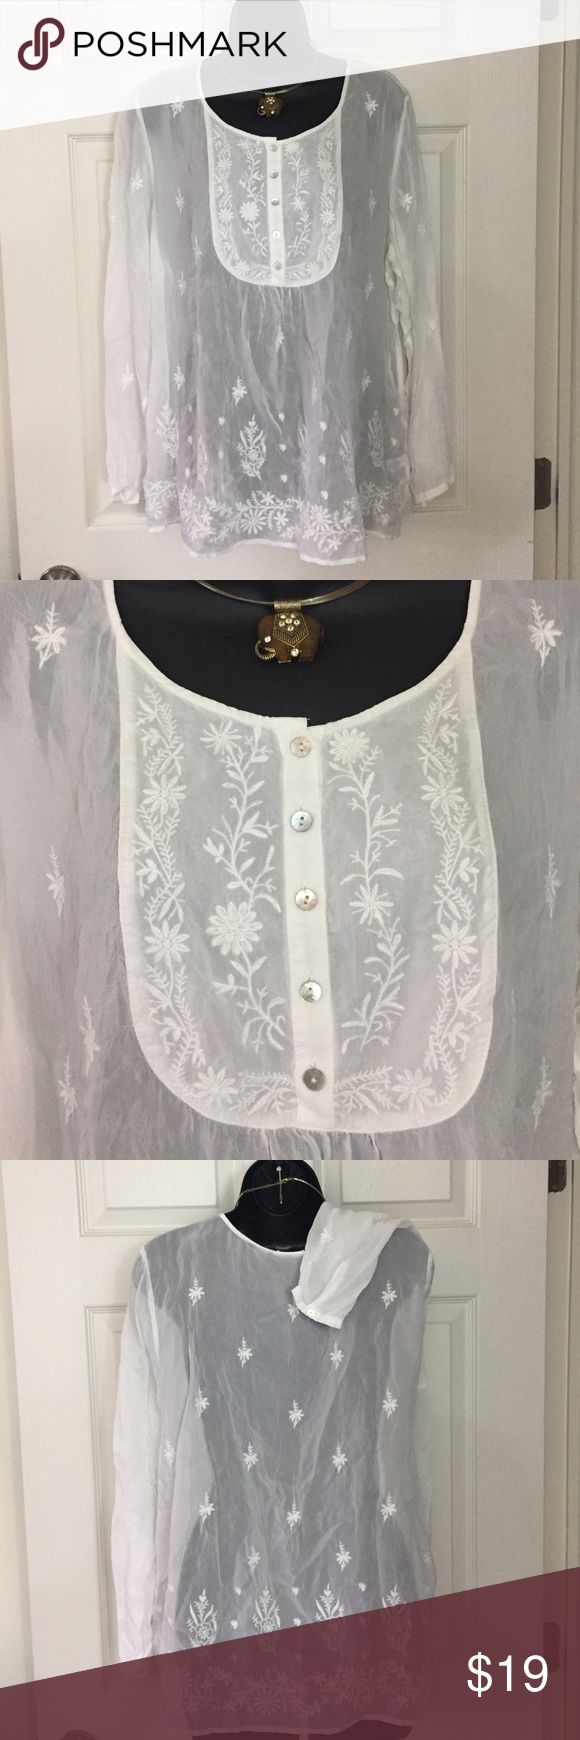 J.Jill uncommon threads top White semi sheer top with beautiful embroidery. J. Jill Tops